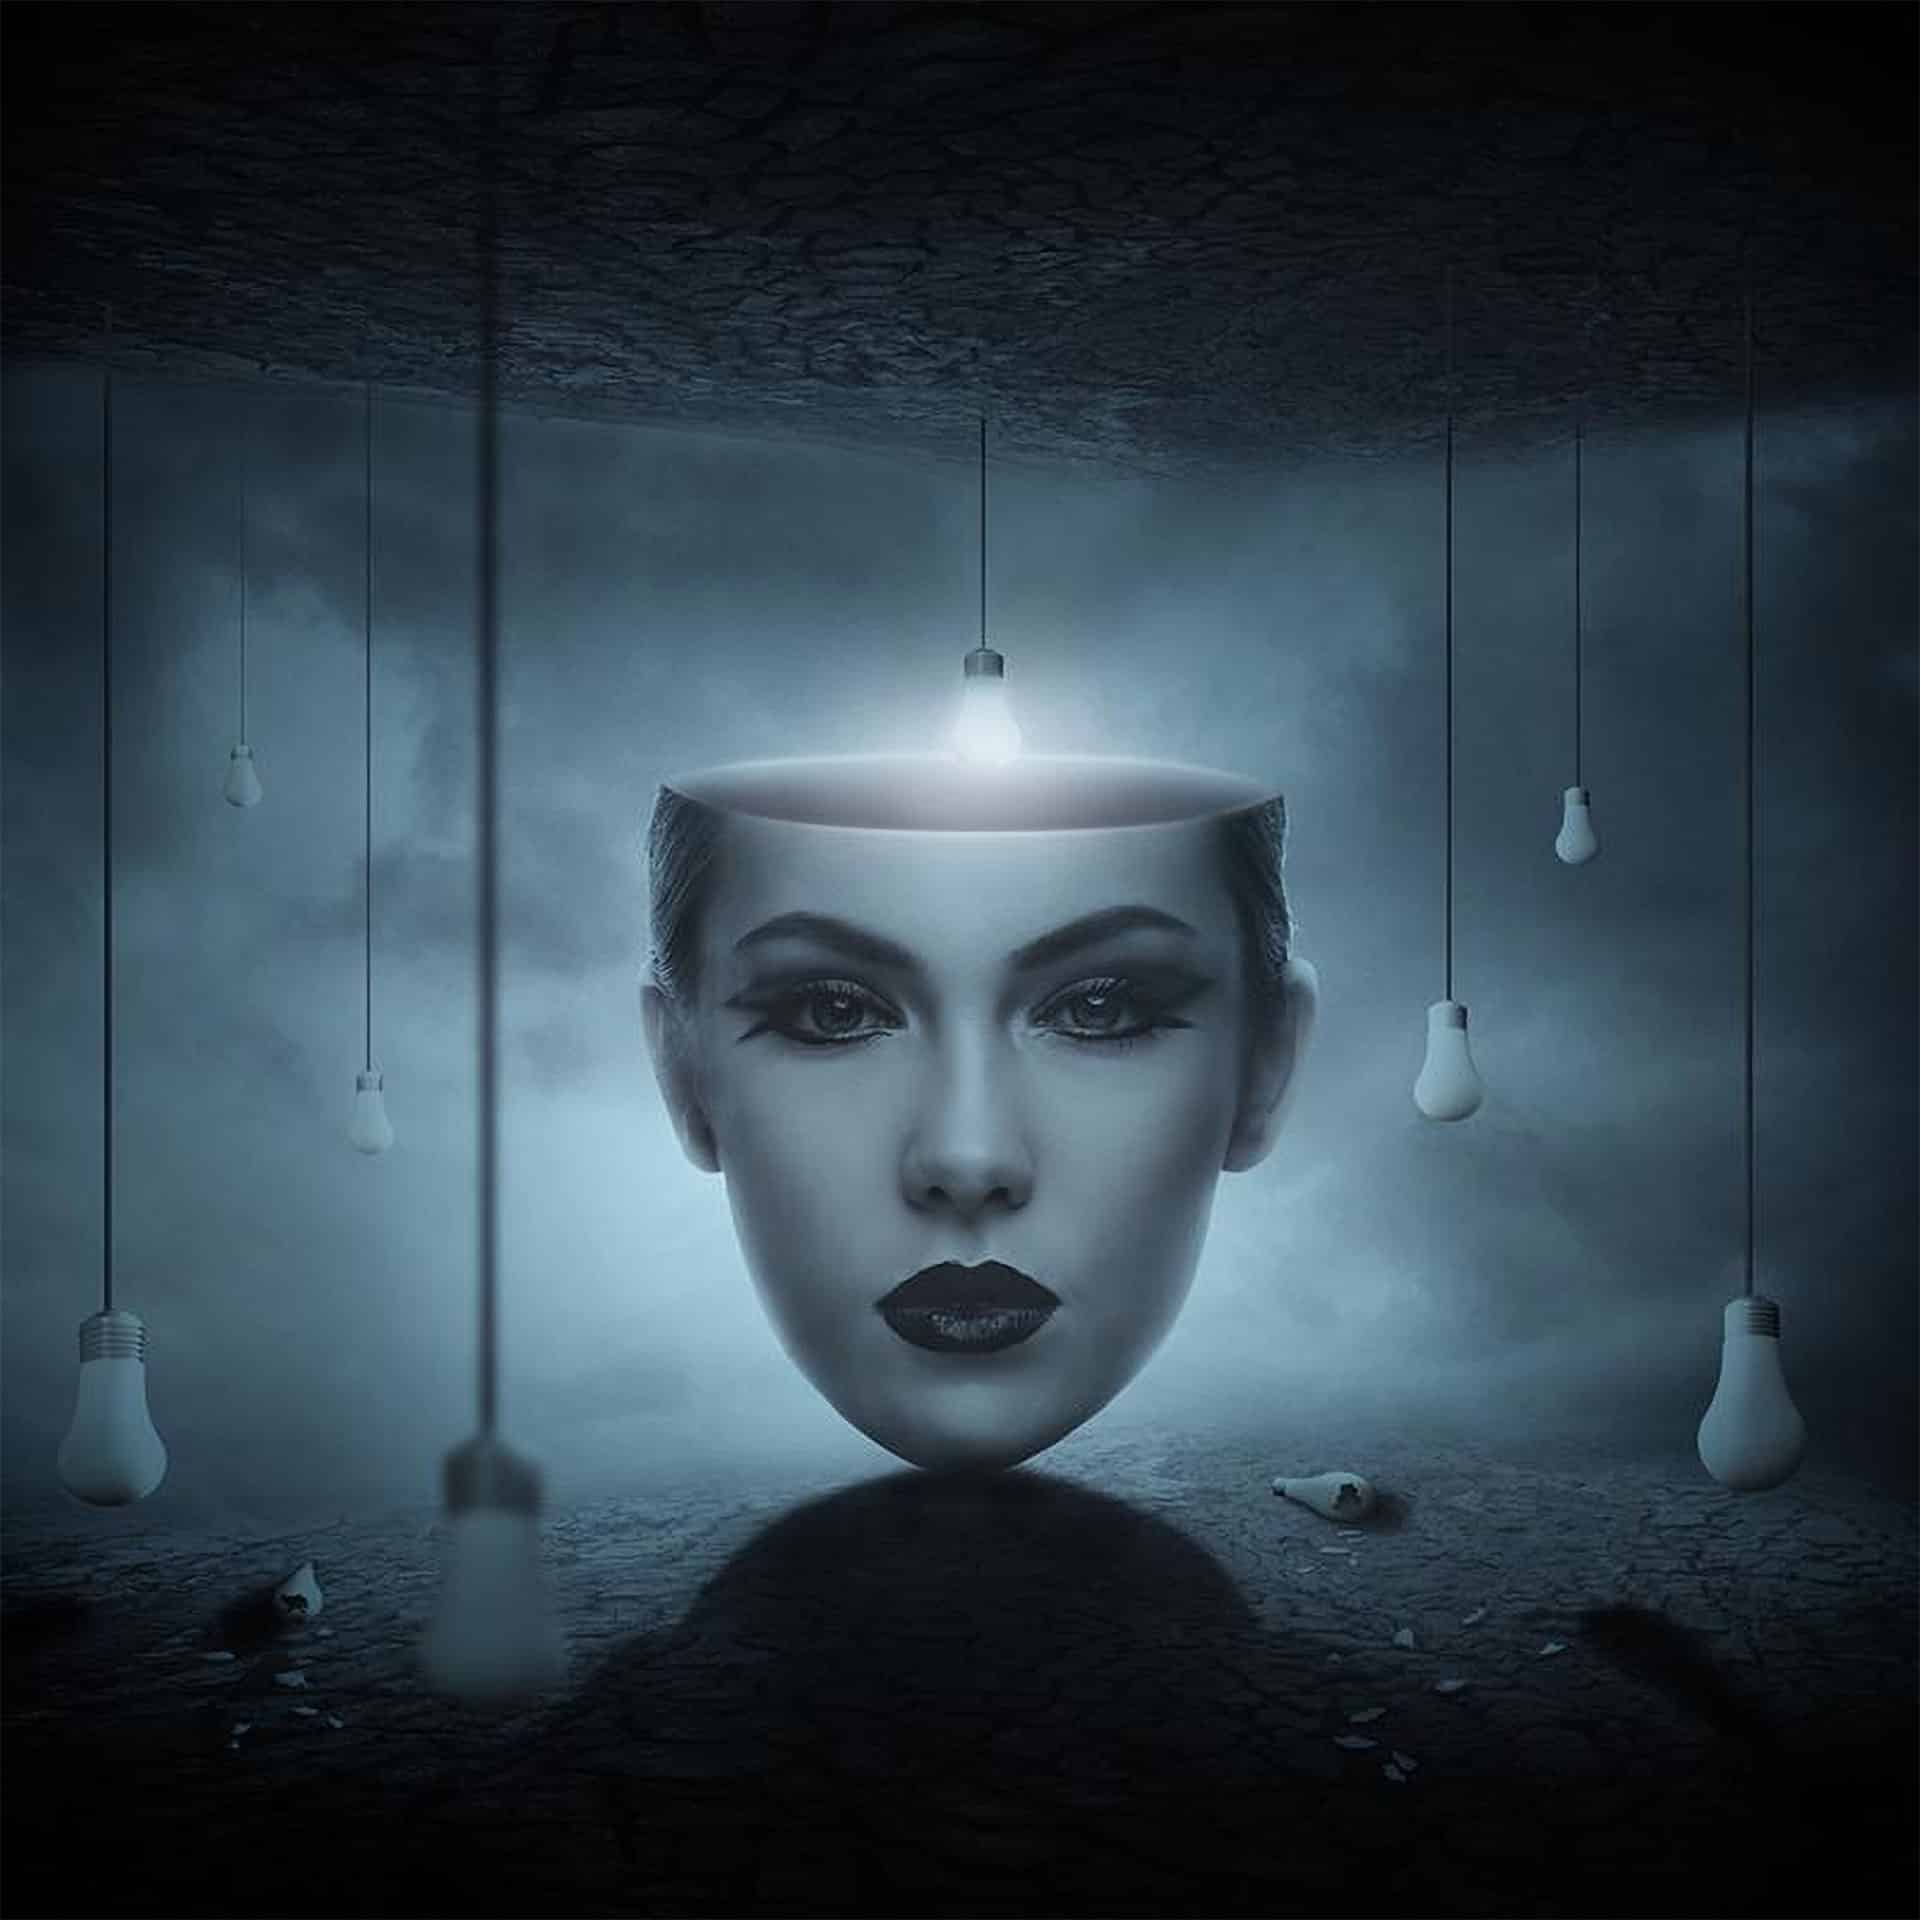 How to Create a Surreal, Conceptual Head Photo Manipulation with Photoshop